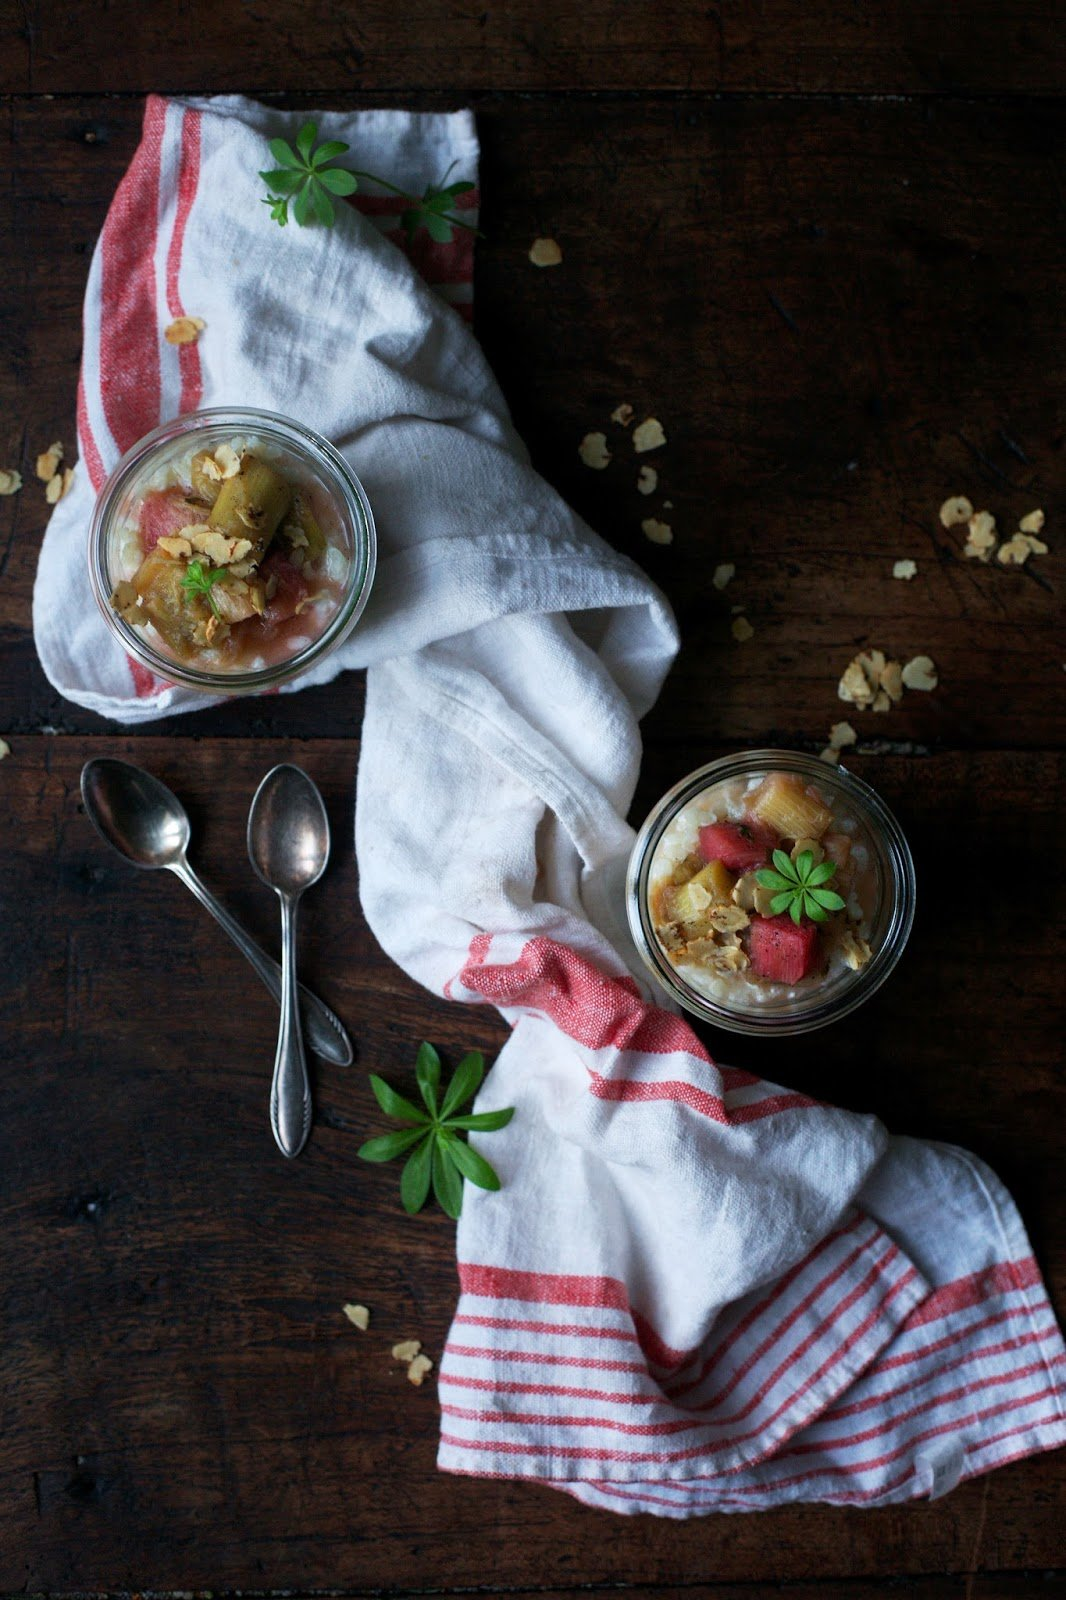 Goat-Rice Pudding with Rhubarb Compote, Earth Almond Flakes and a touch of Sweet Woodruff